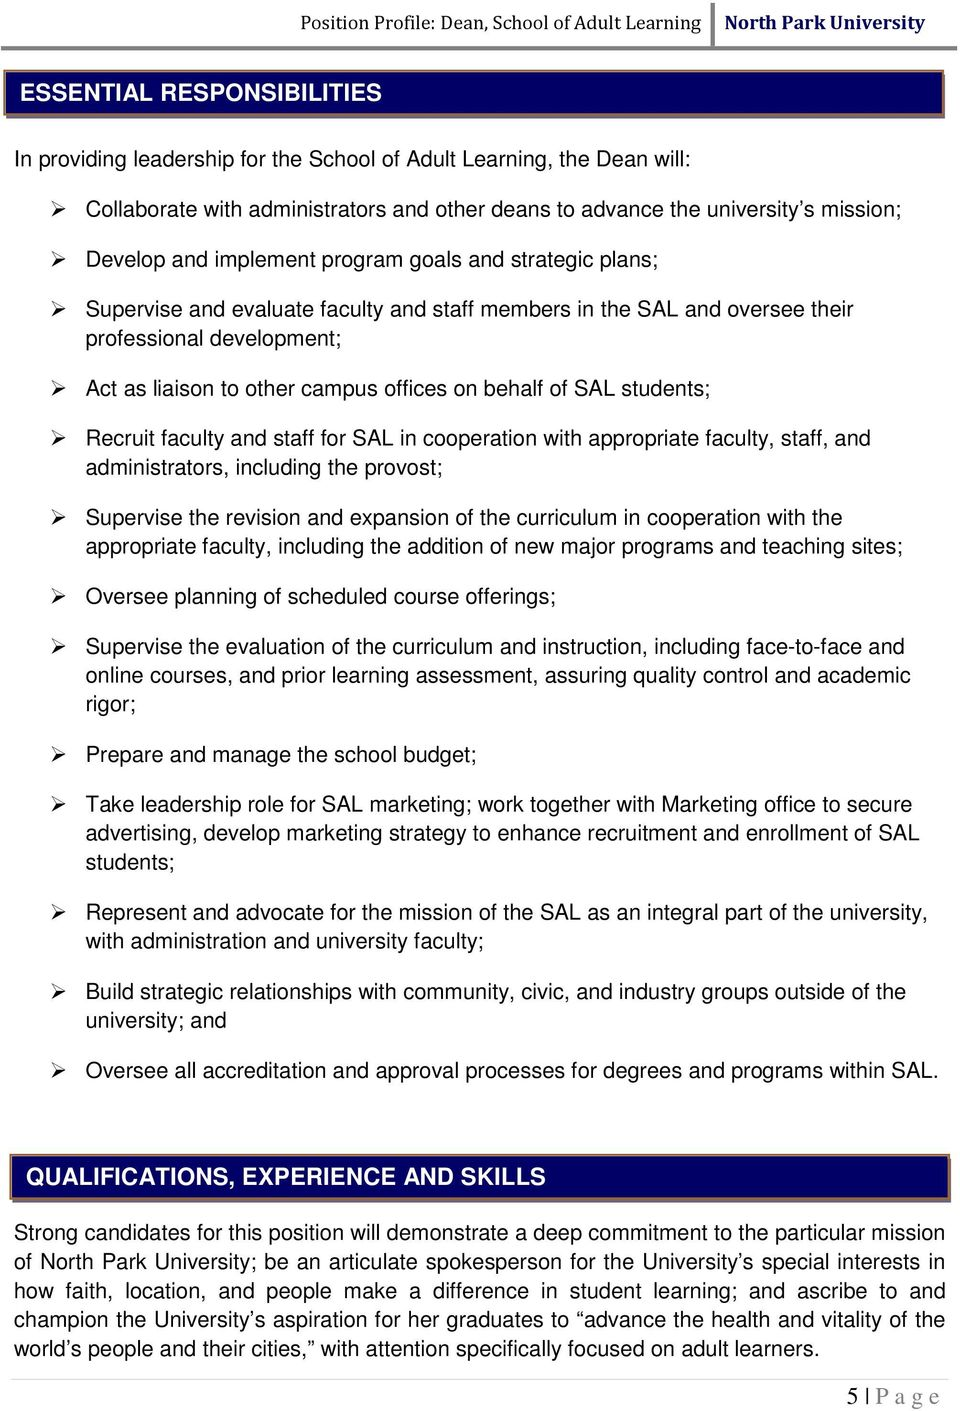 of SAL students; Recruit faculty and staff for SAL in cooperation with appropriate faculty, staff, and administrators, including the provost; Supervise the revision and expansion of the curriculum in